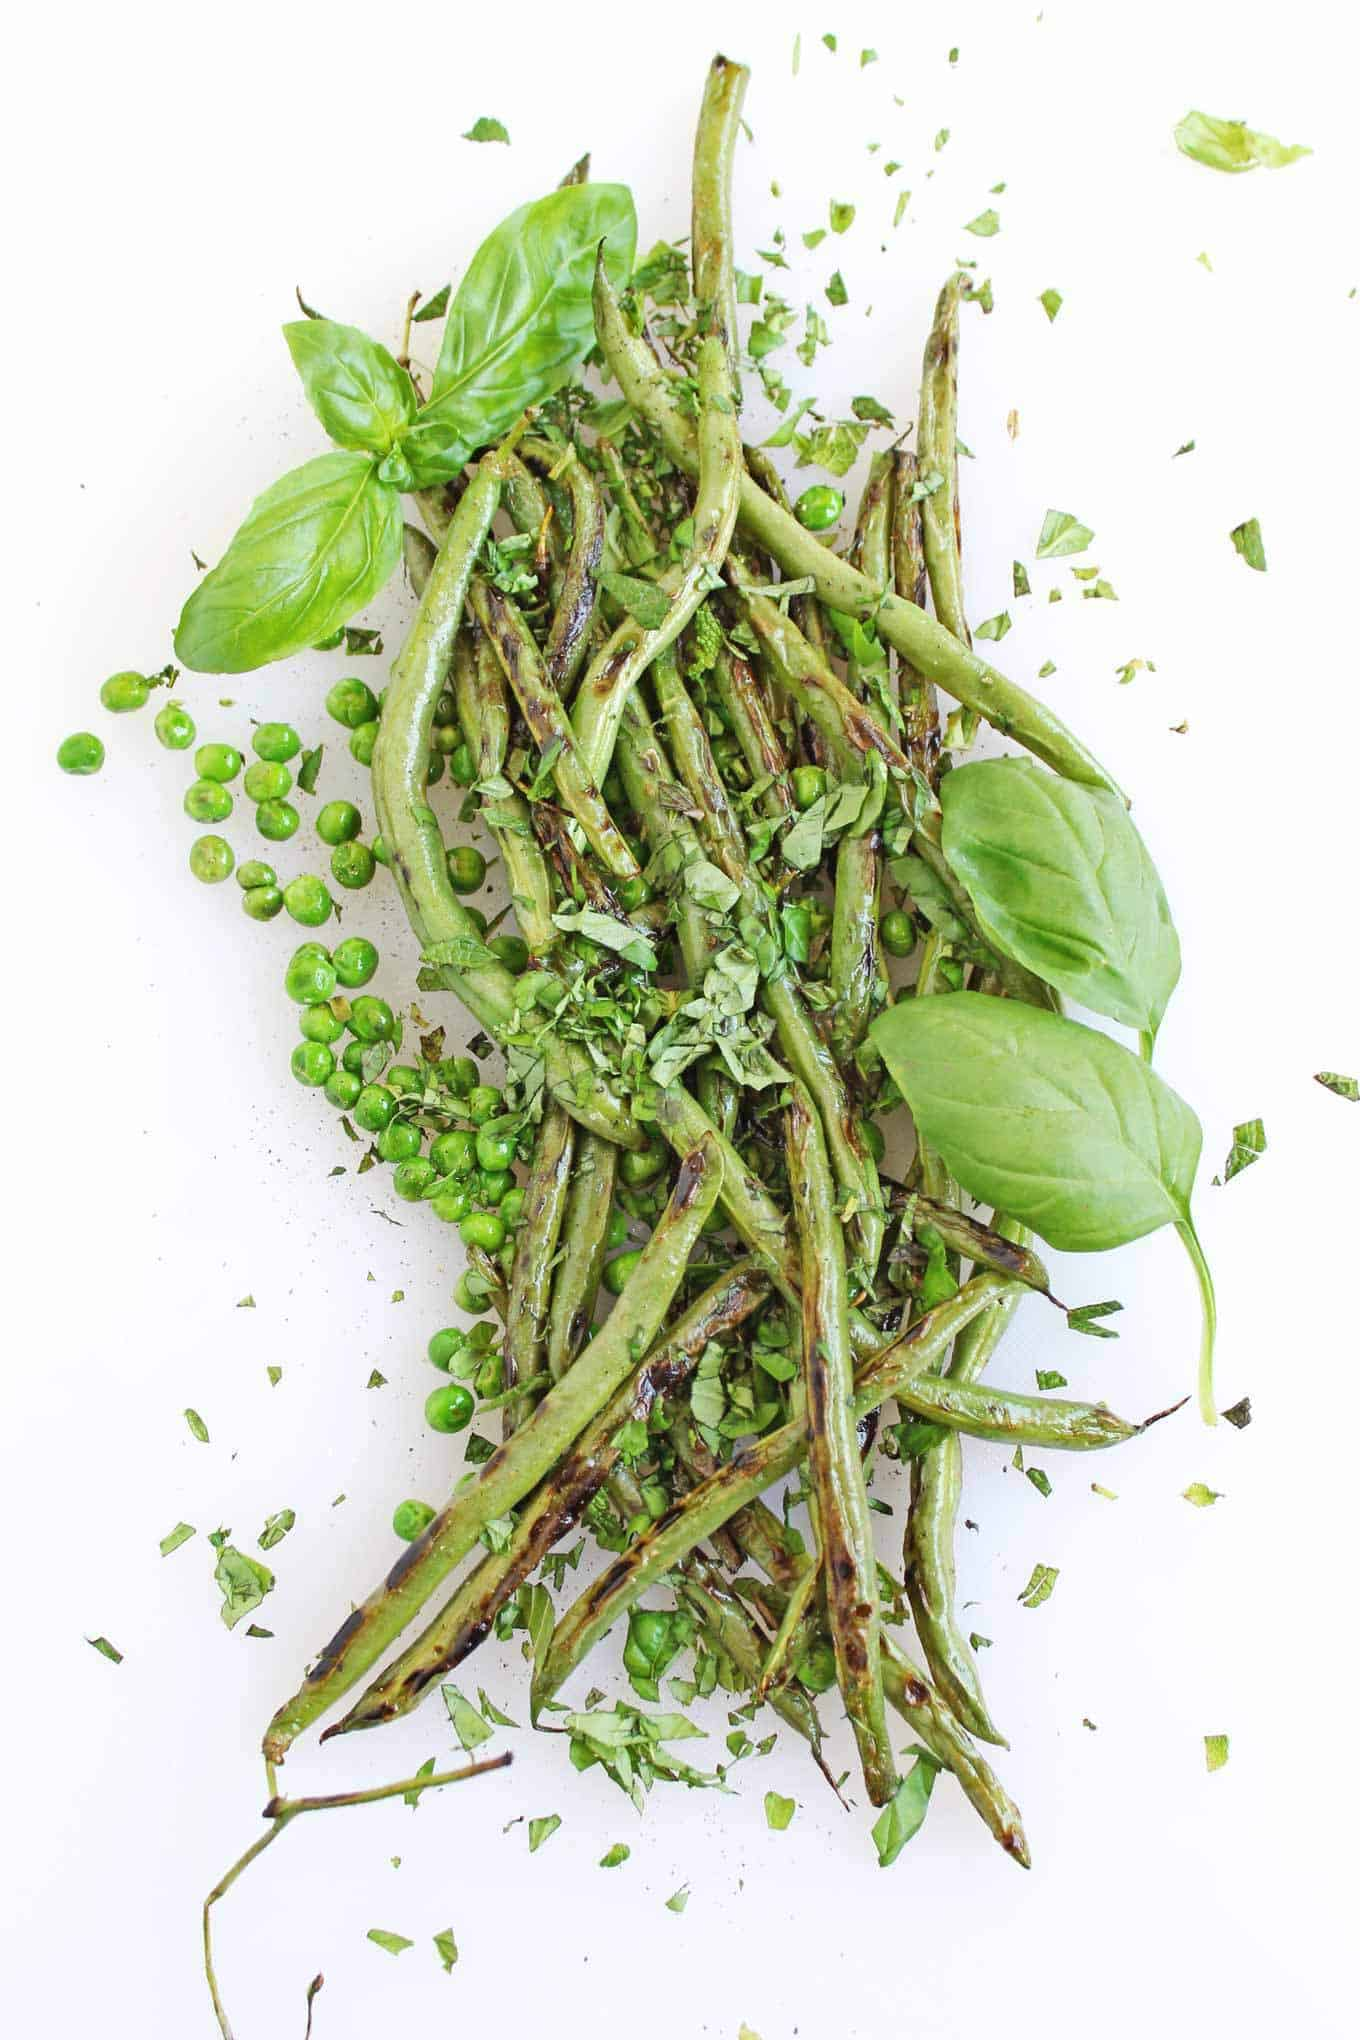 Sauteed pea and green bean salad + 15 Farmers market recipes to make in May! Delicious, vegetarian, (mostly) healthy spring/summer recipes made with fresh, seasonal produce from your local farmers market or CSA bin. Eat local! // Rhubarbarians